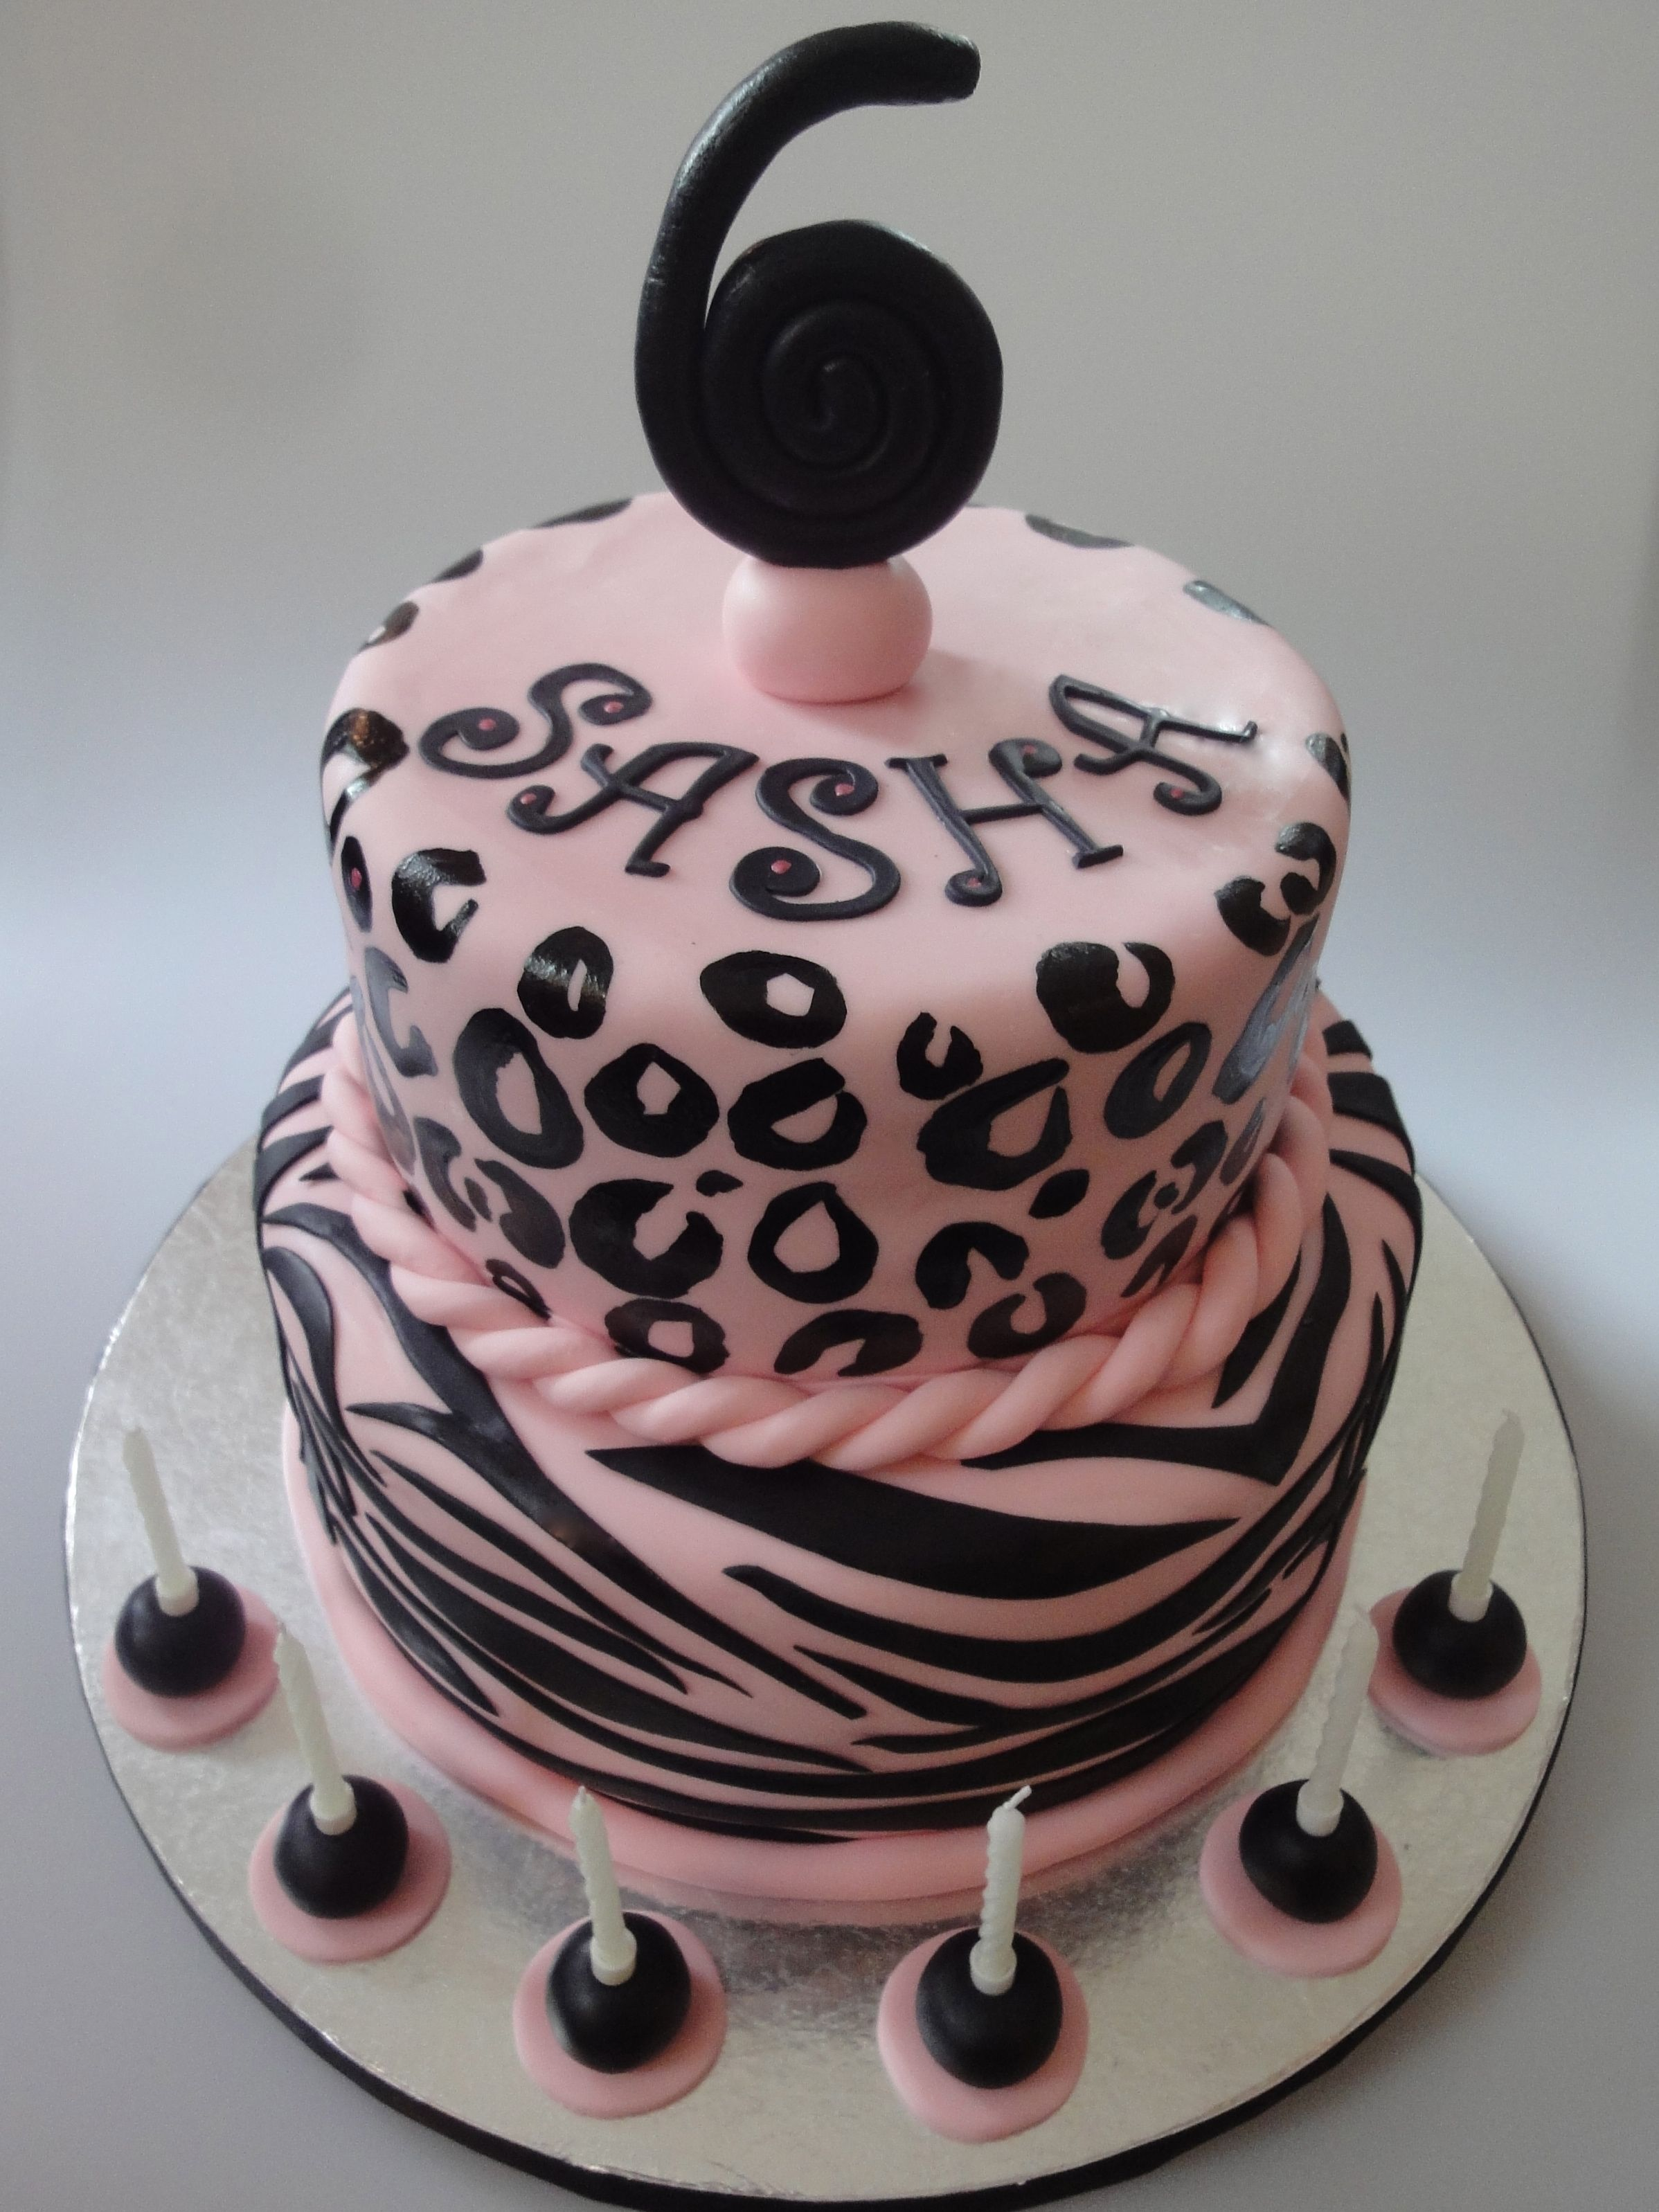 Animal Print Cake Itty Bitty Bakery NYC Pinterest